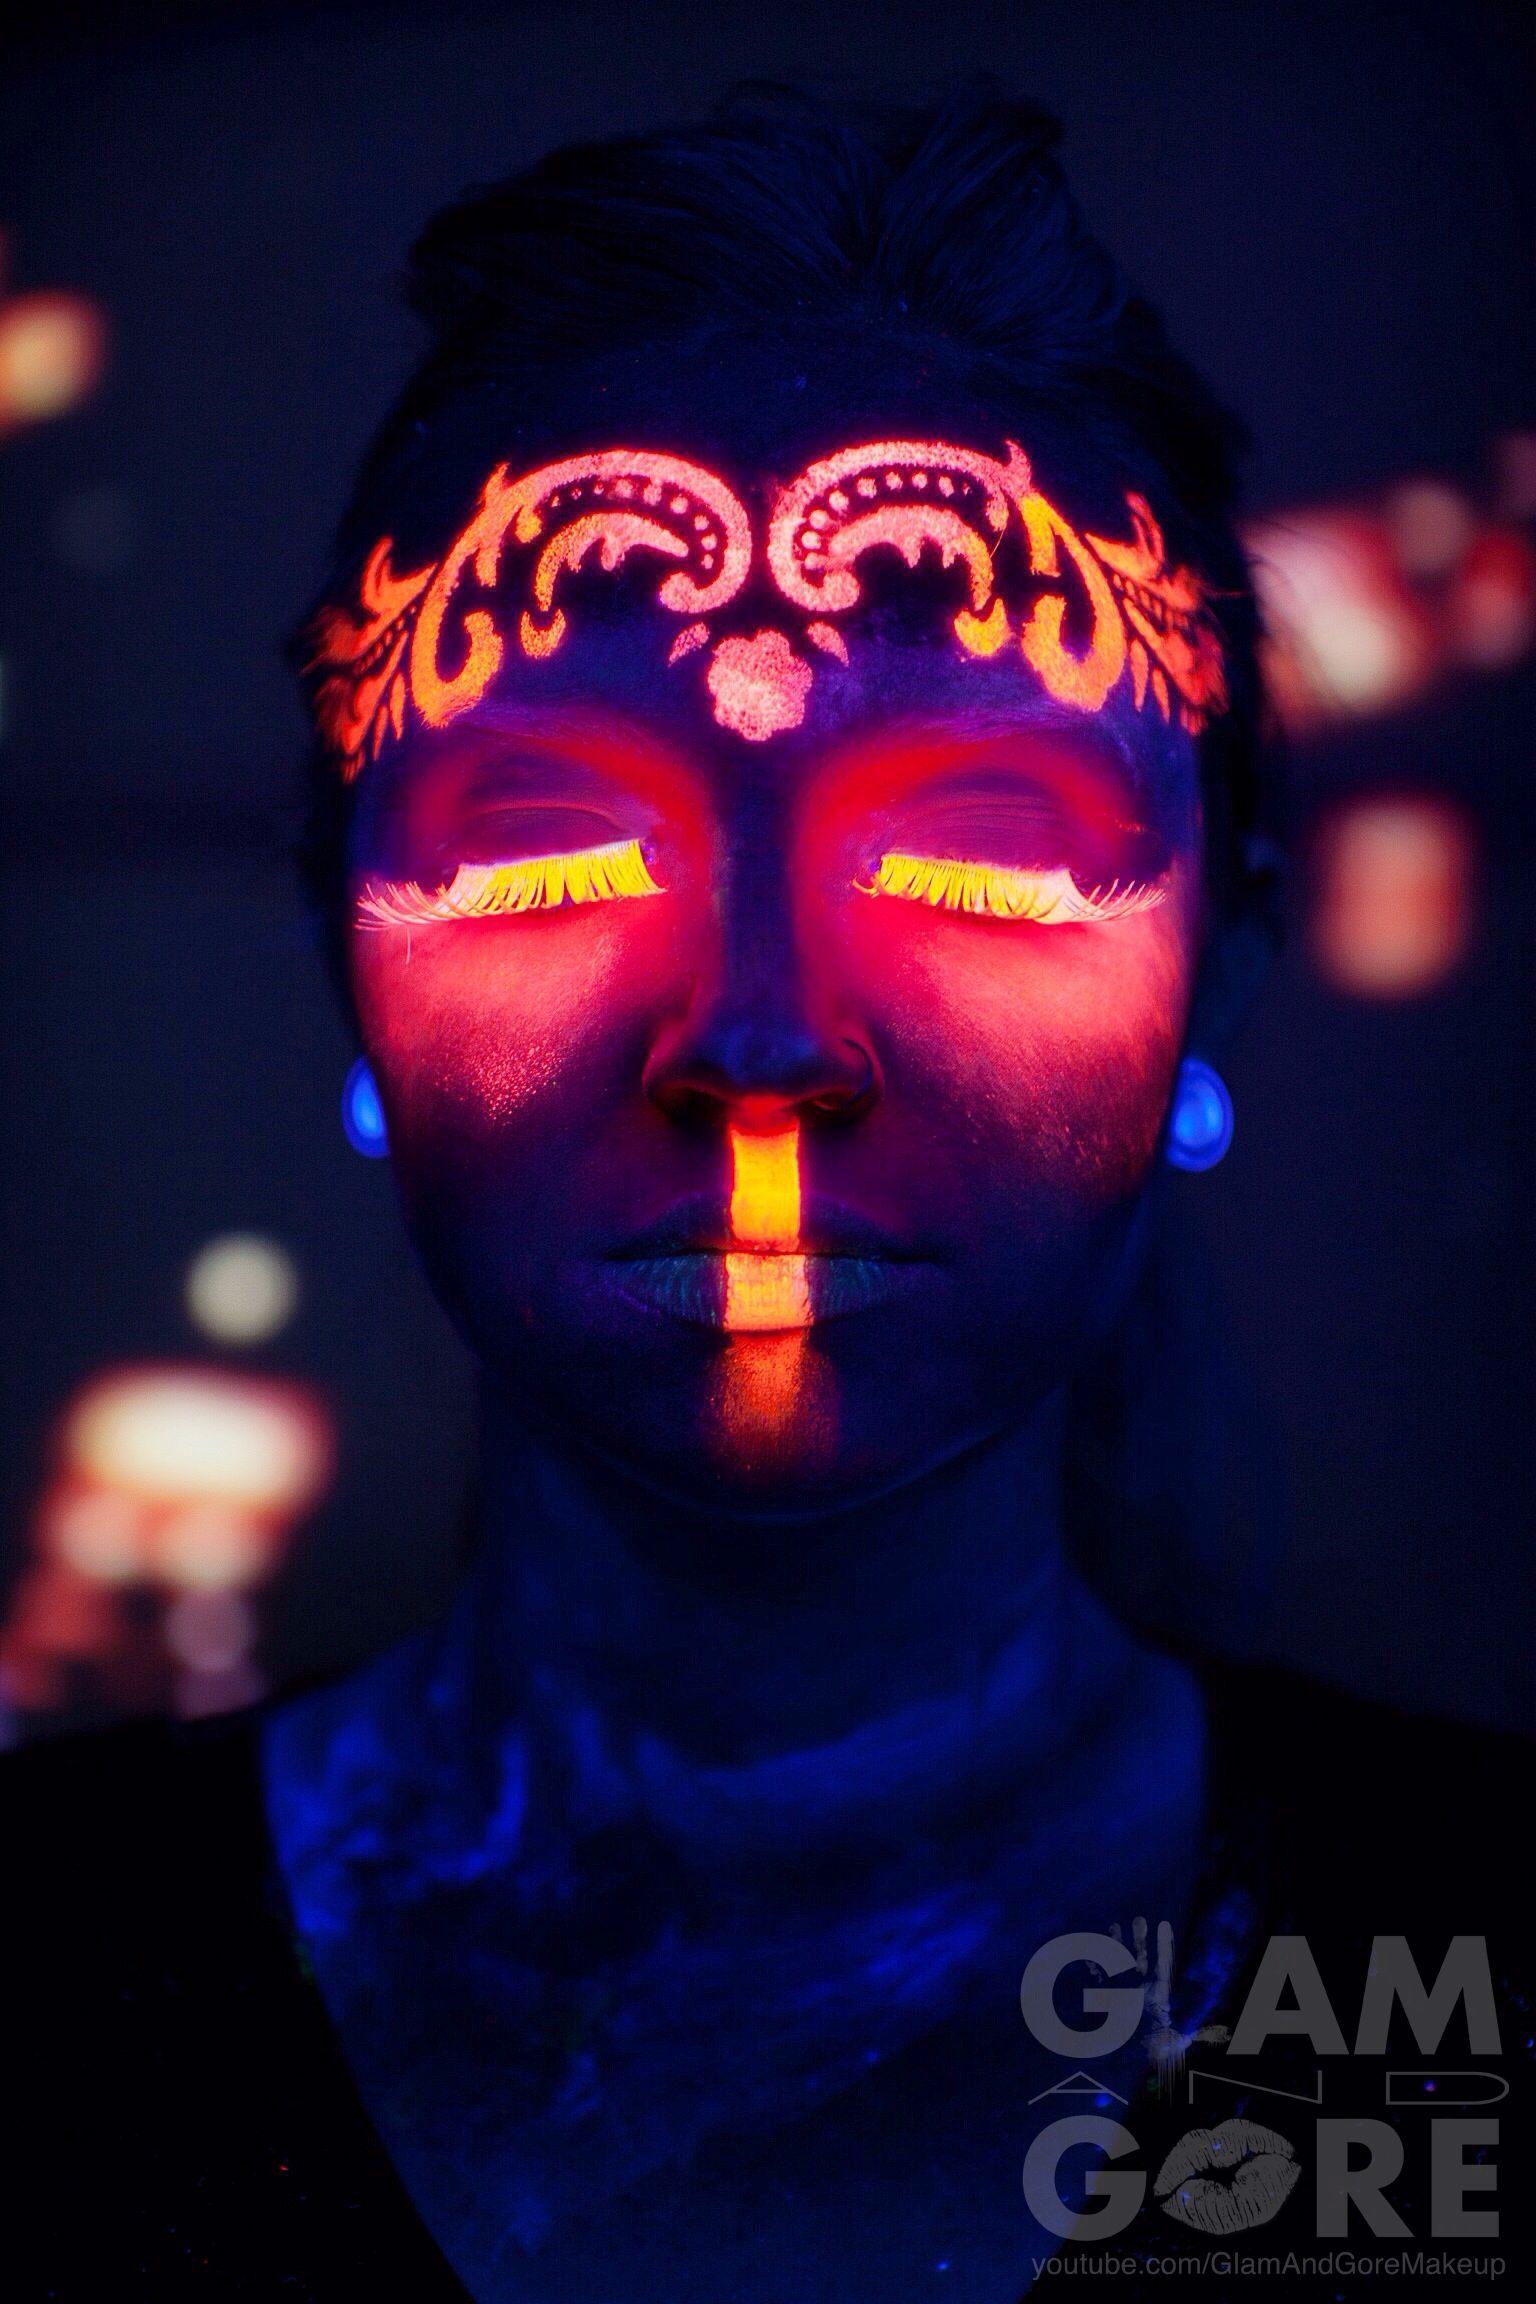 Glow In The Dark Uv Face Paint For More Makeup Looks And